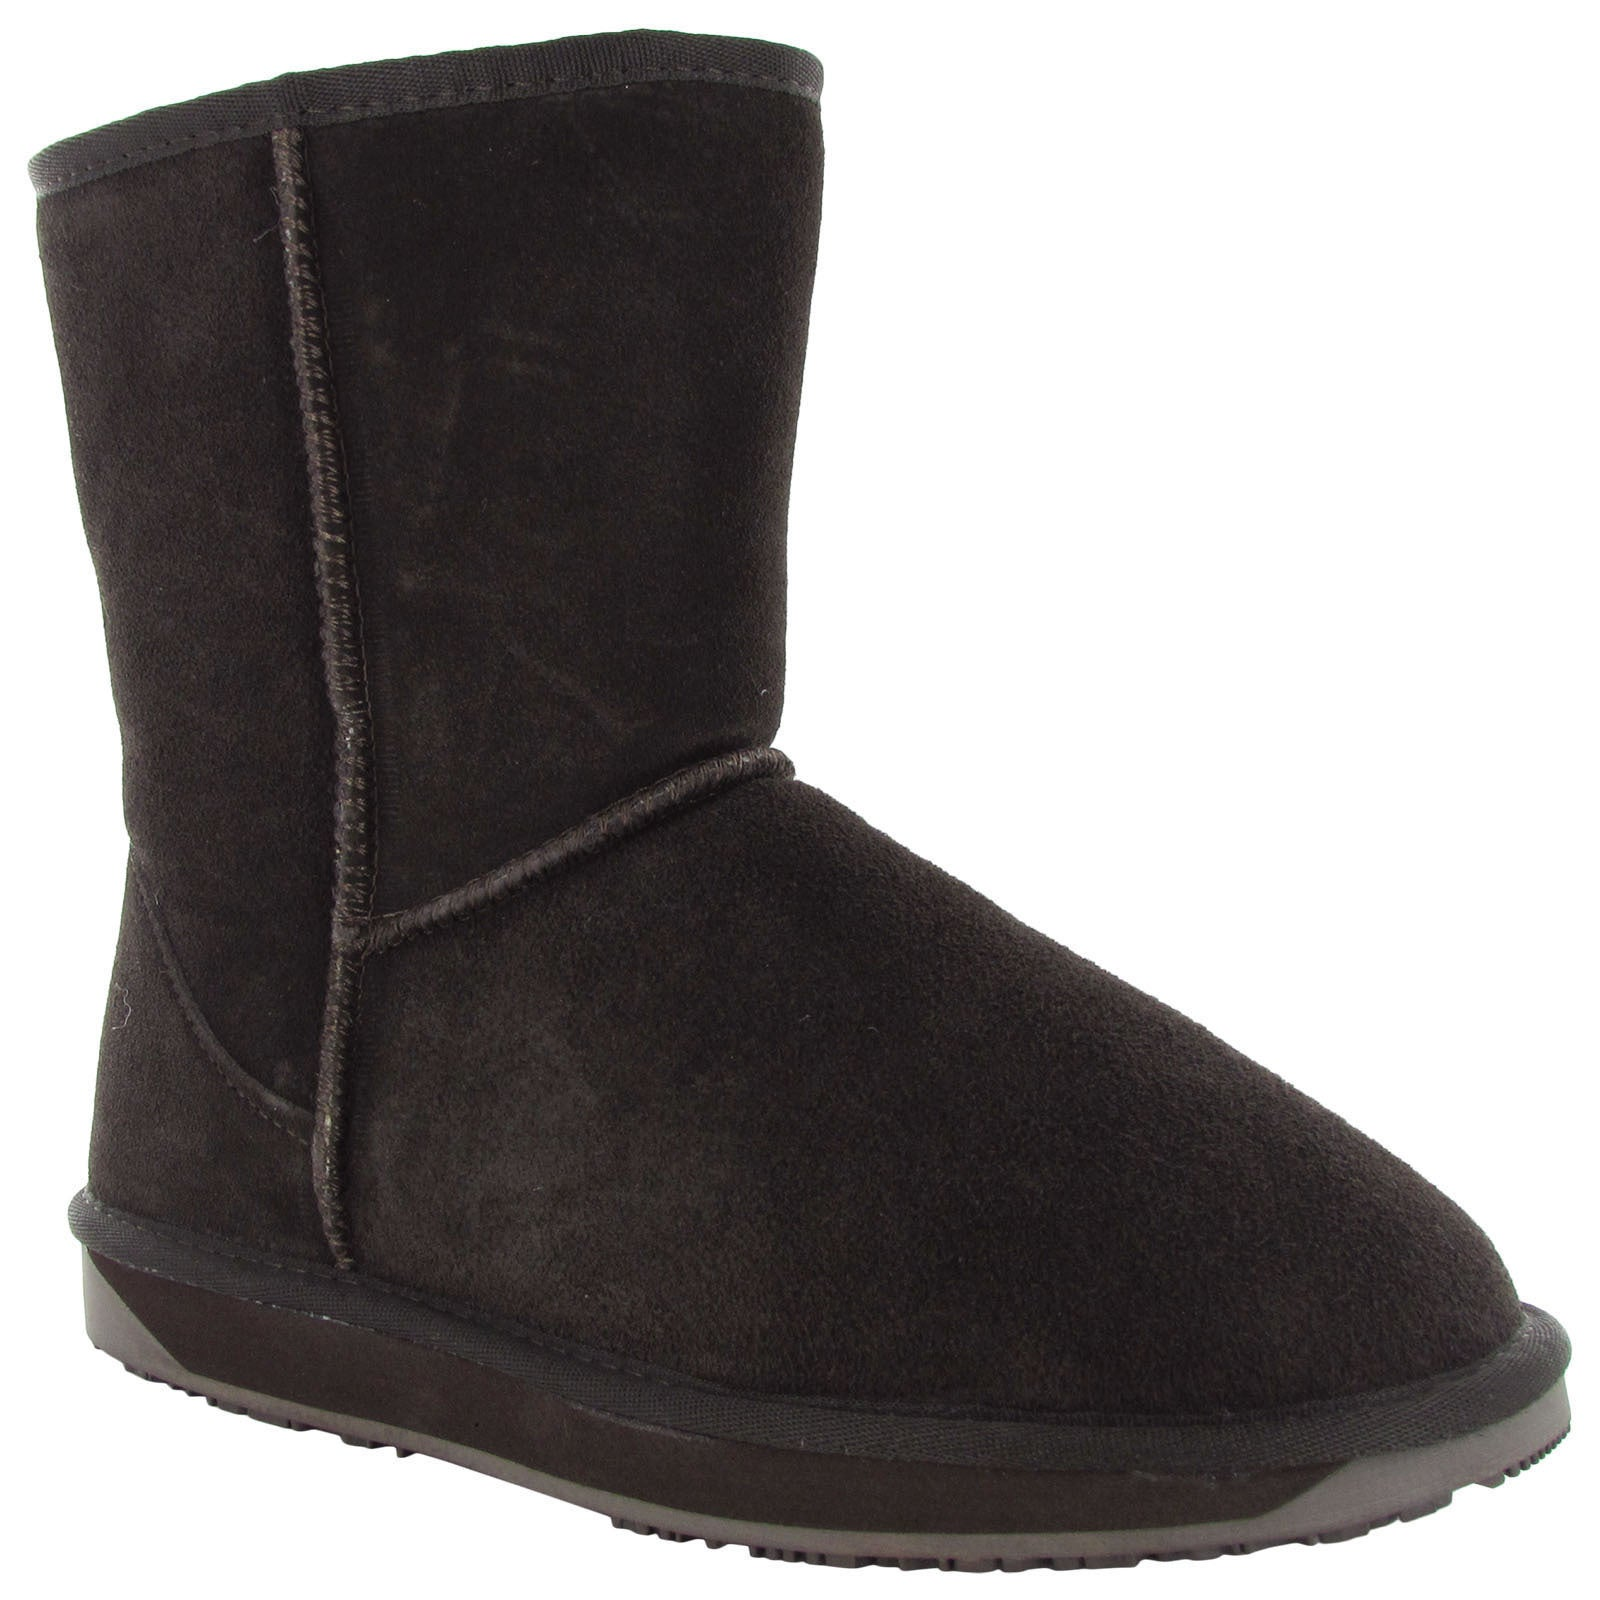 Womens Boo Roo Womens Eva Suede Merino Wool Winter Snow Boot Shoe Outlet Size 38